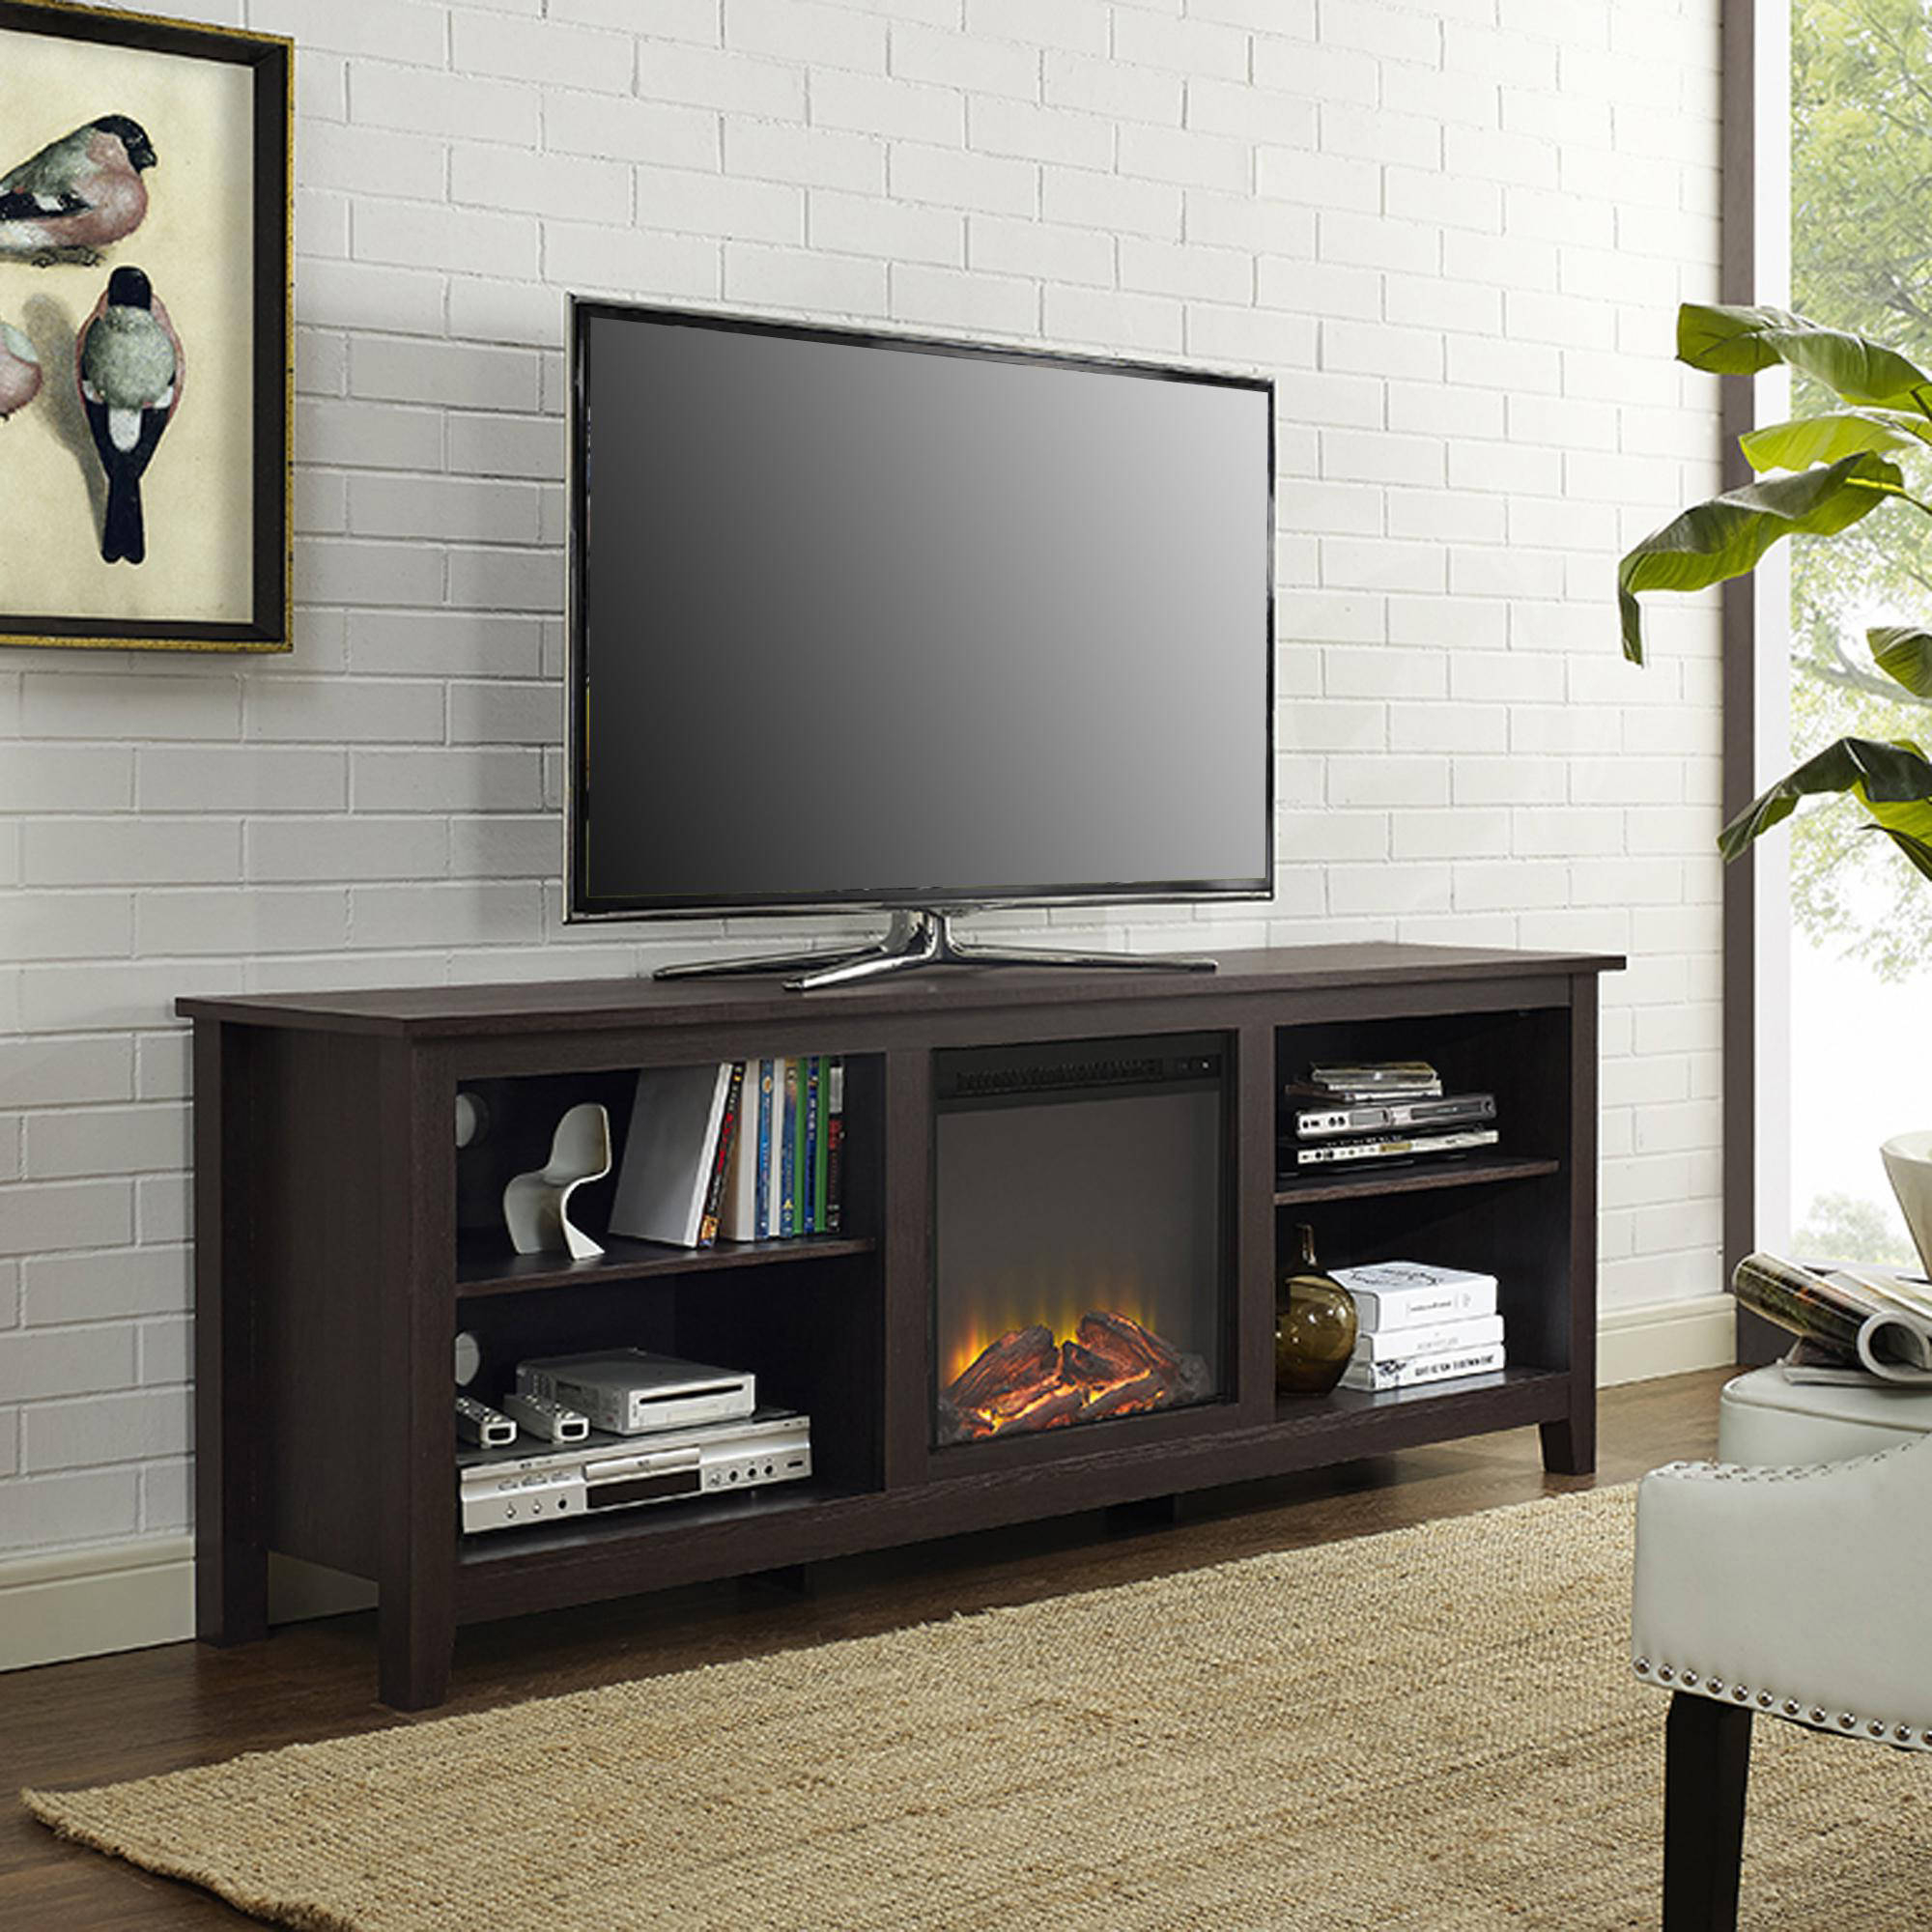 Most Popular Tv Stands & Entertainment Centers – Walmart With Regard To Entertainment Center Tv Stands (View 14 of 20)